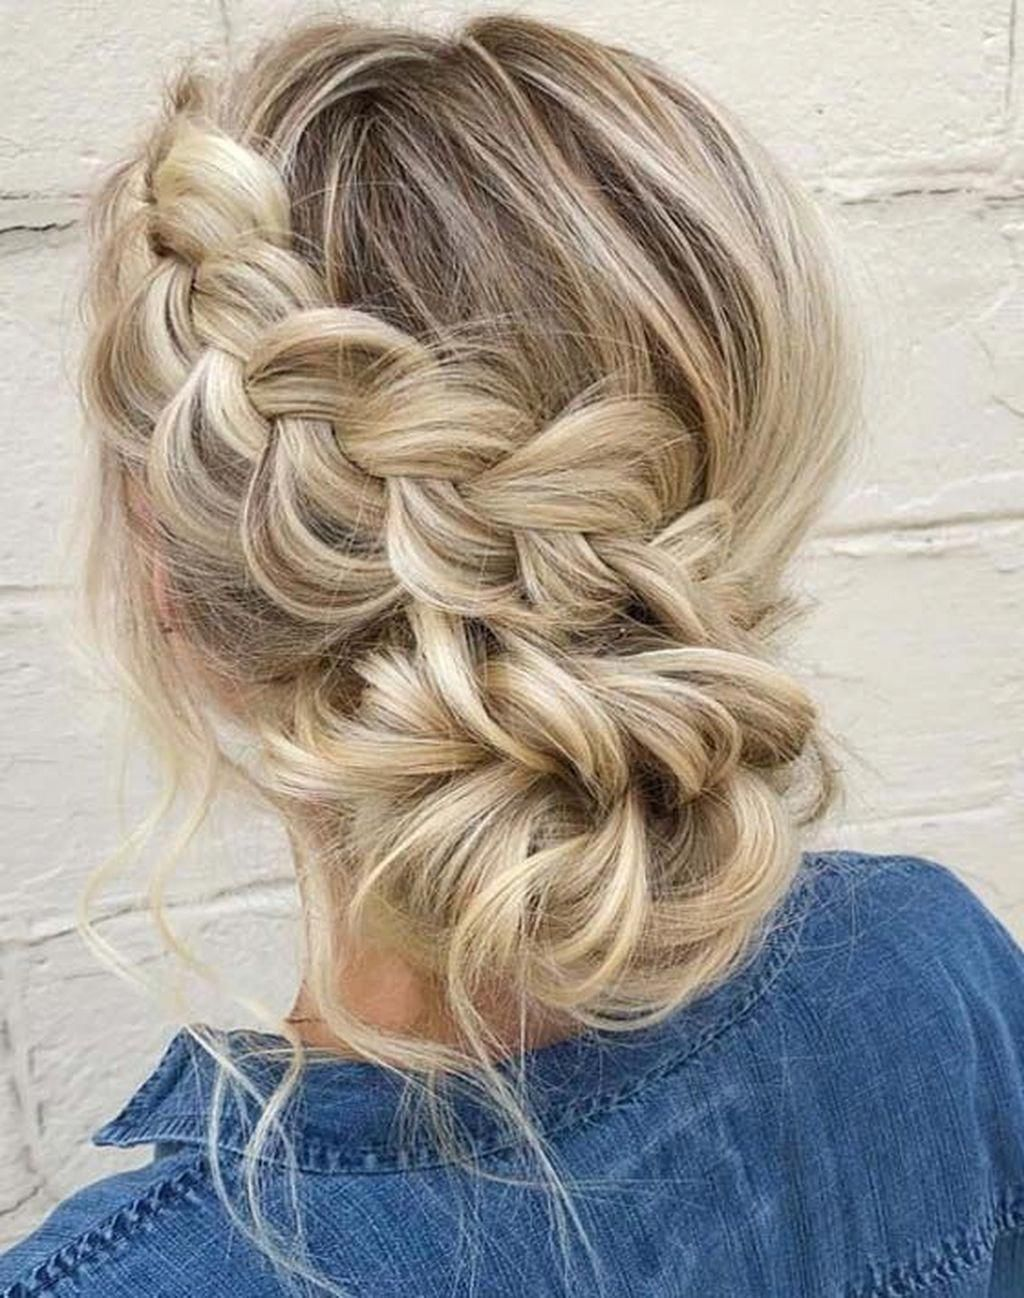 Homecoming Updos Hairstyles 4 Long Hair Simple Up Do 20190617 Hair Styles Long Hair Styles Braiding Your Own Hair